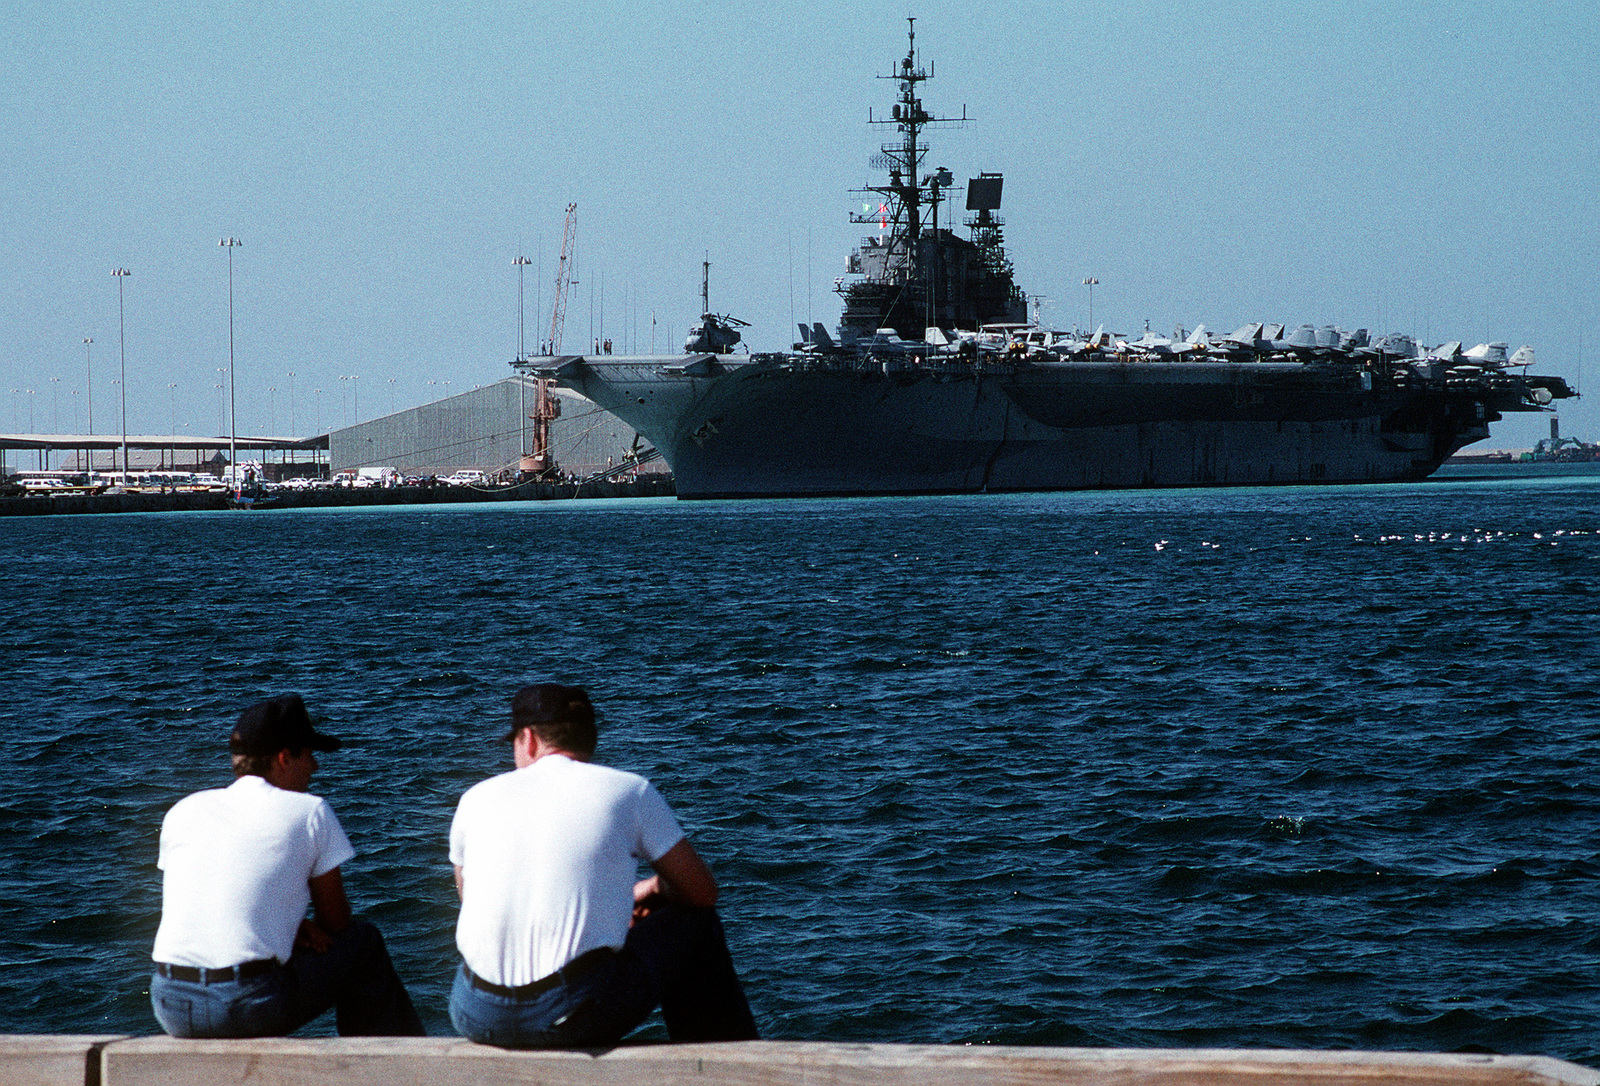 Two sailors talk on the pier as the aircraft carrier USS MIDWAY (CV-41) lies tied up in front of them during Operation Desert Shield